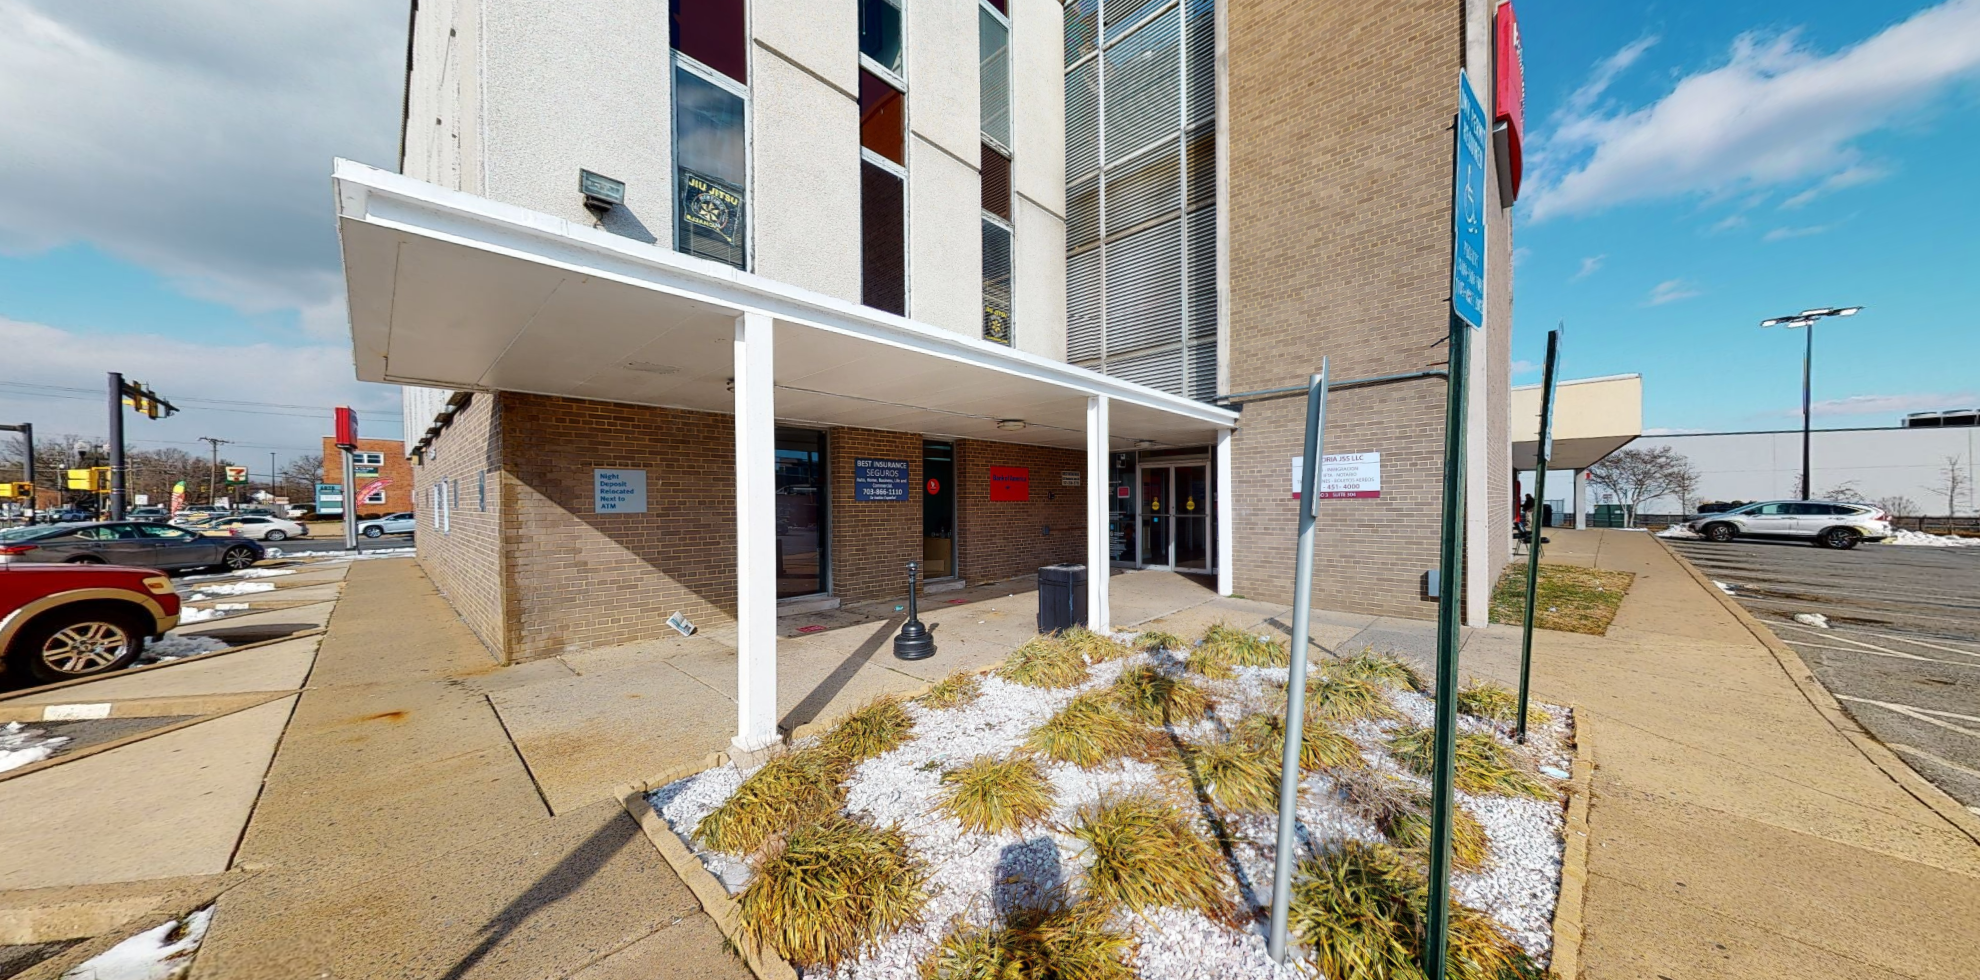 Bank of America financial center with drive-thru ATM | 6315 Backlick Rd, Springfield, VA 22150